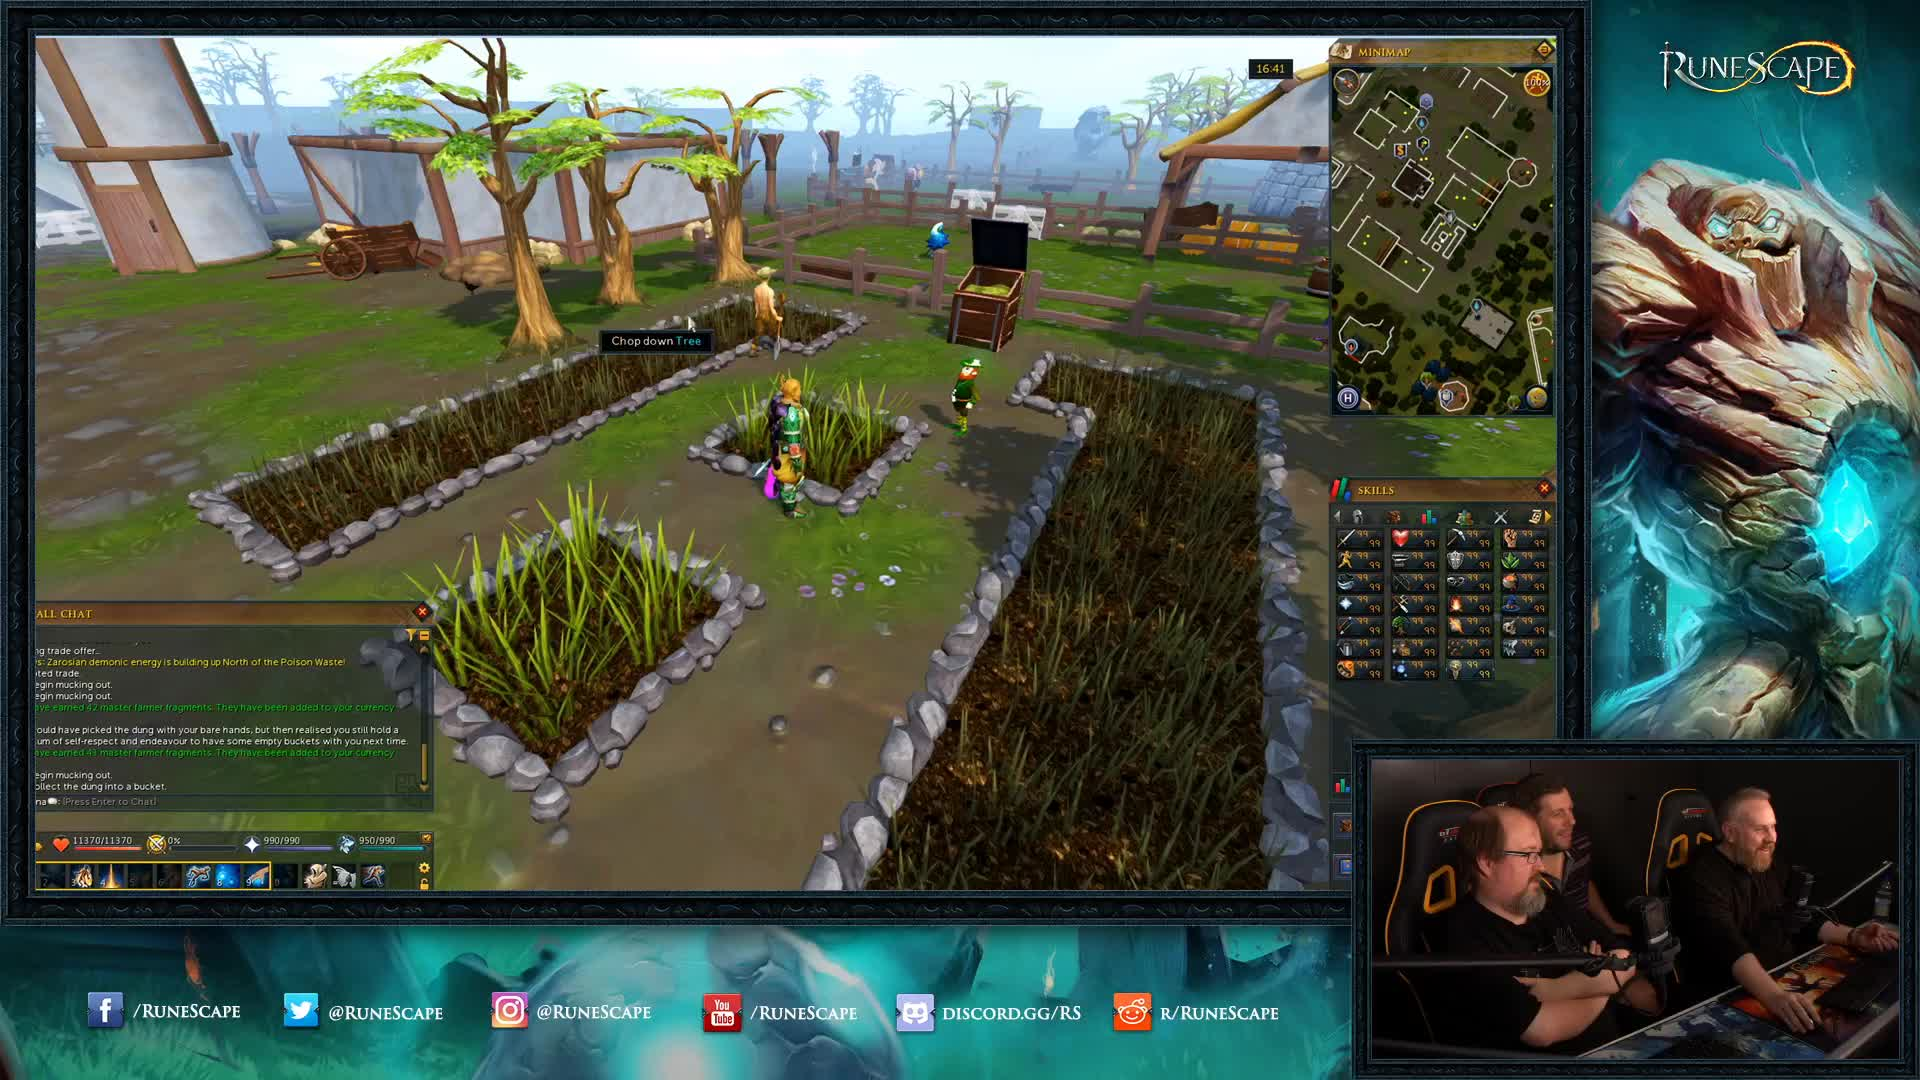 RuneScape - Content Showcase - Player-Owned Farm - Twitch